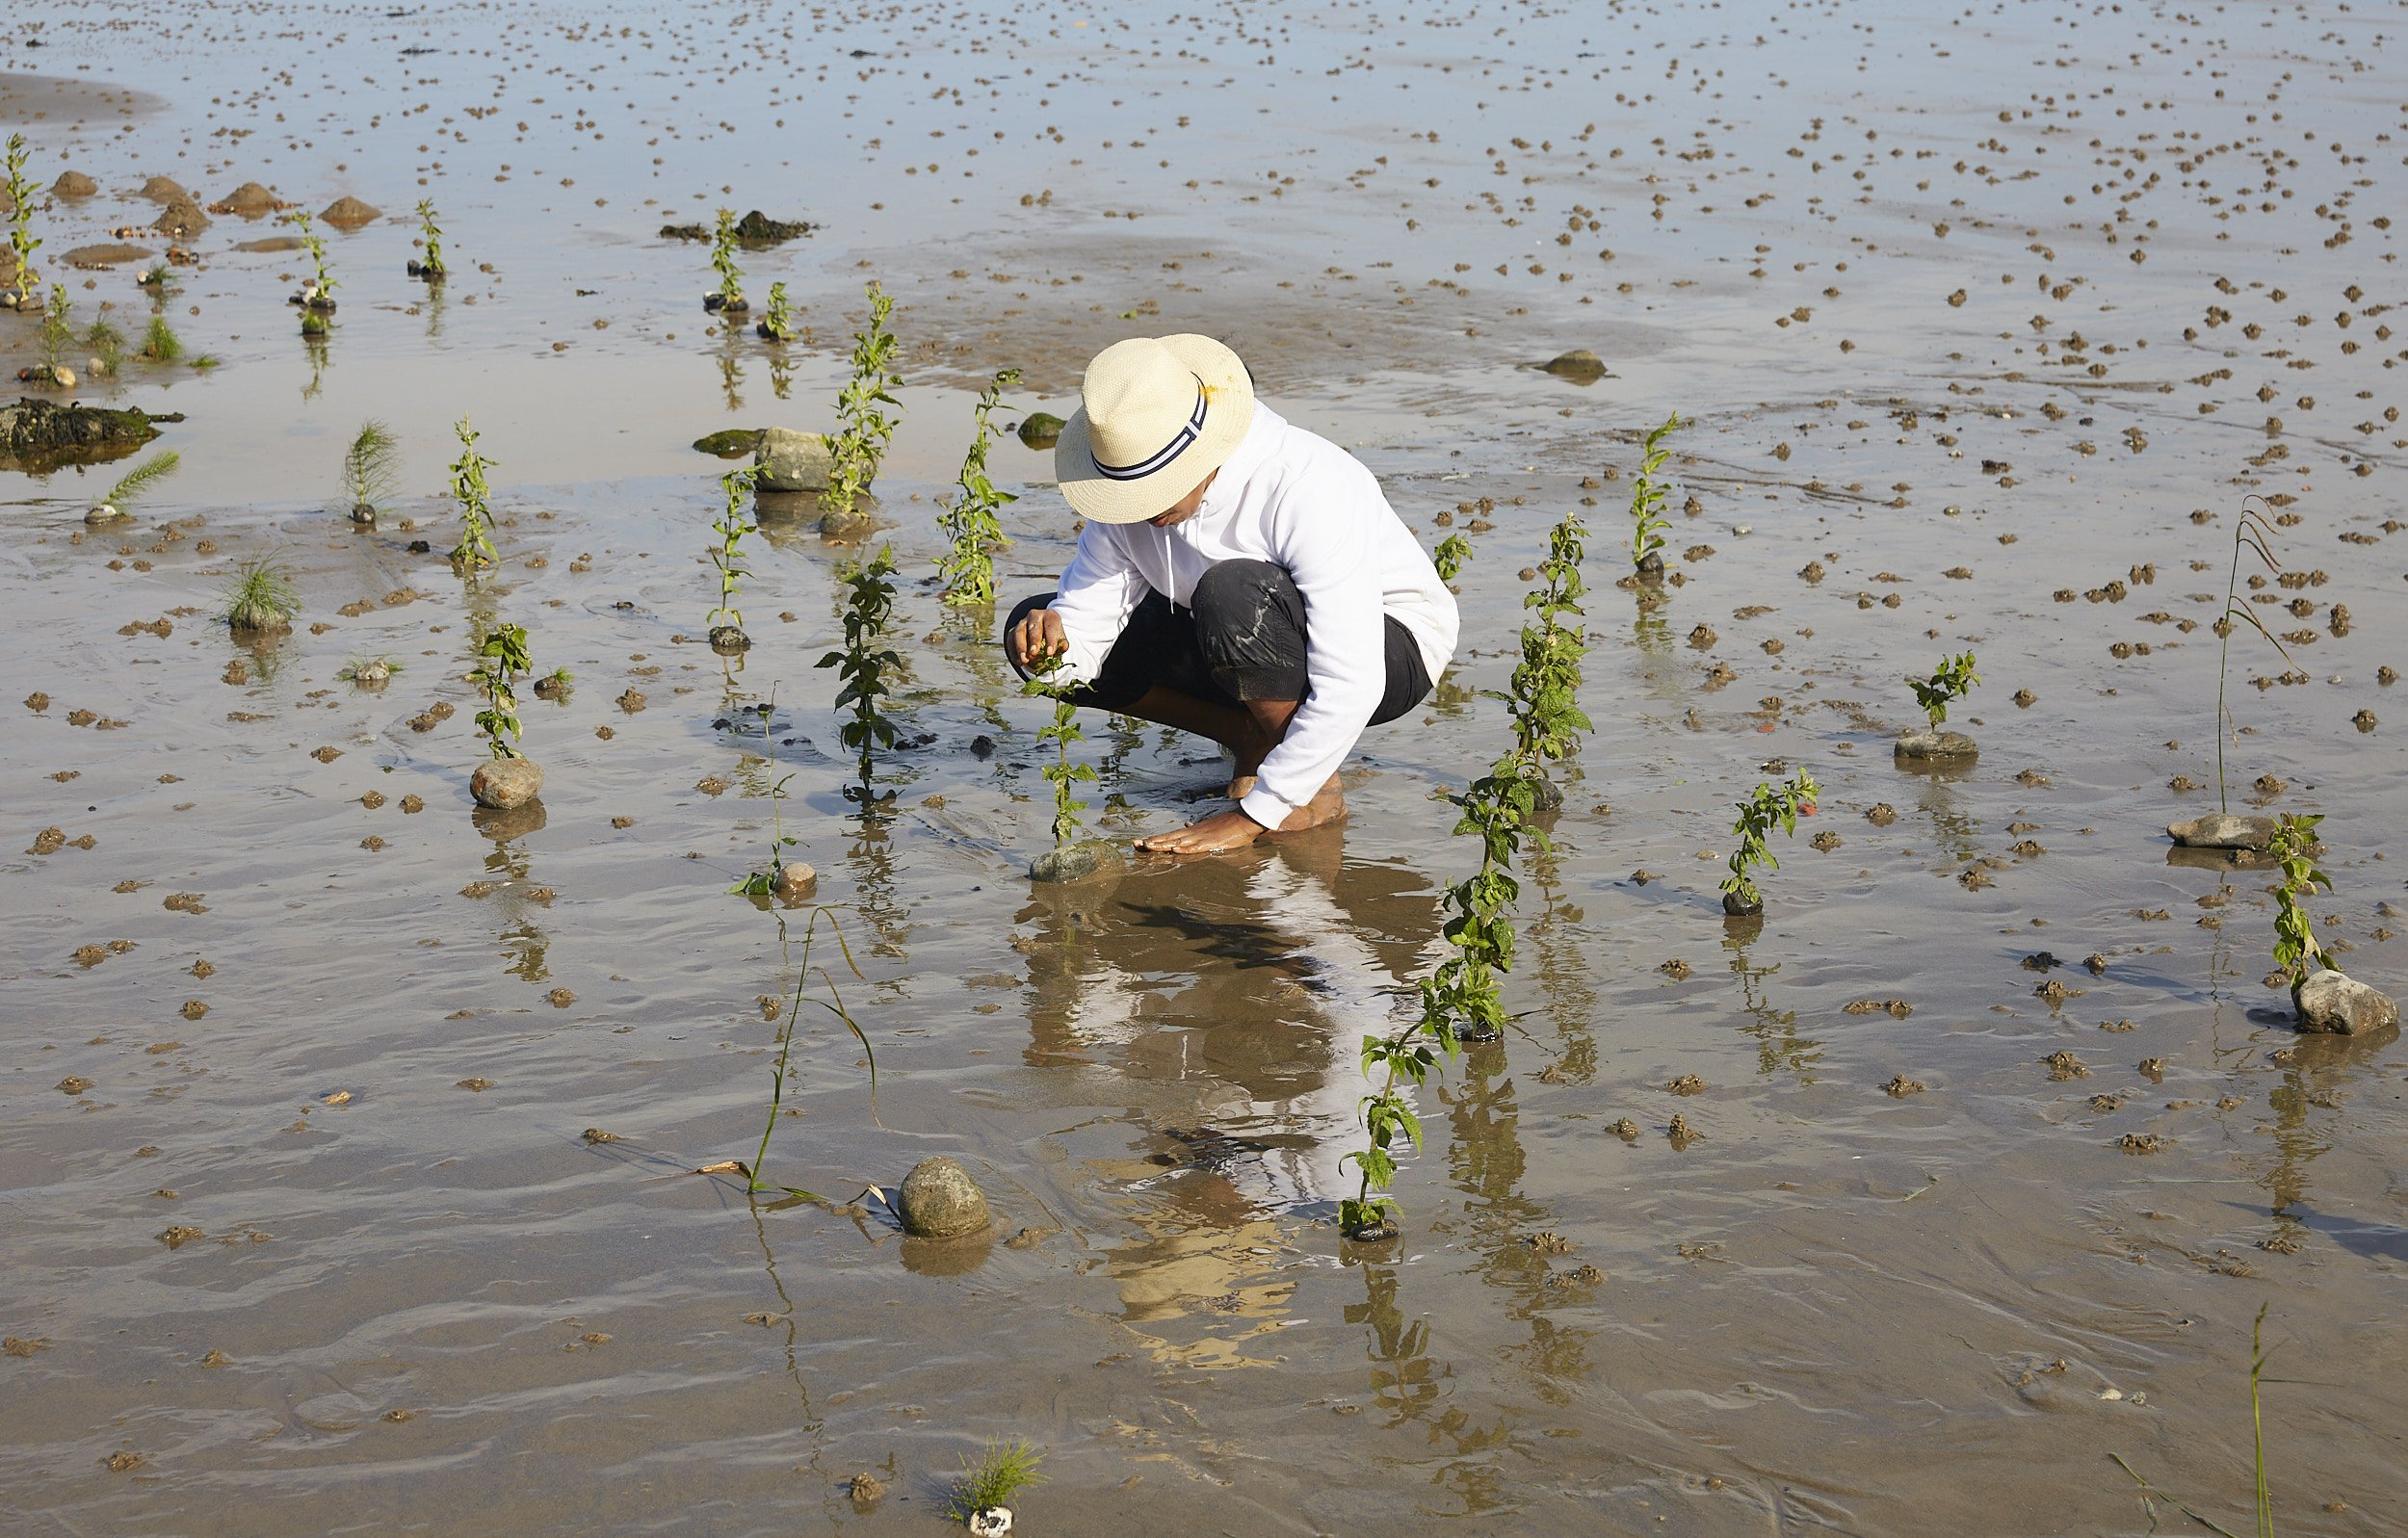 The artist kneeling on the wet shoreline, with one hand at the top of a plant, and the other hand pressed to the wet sand.